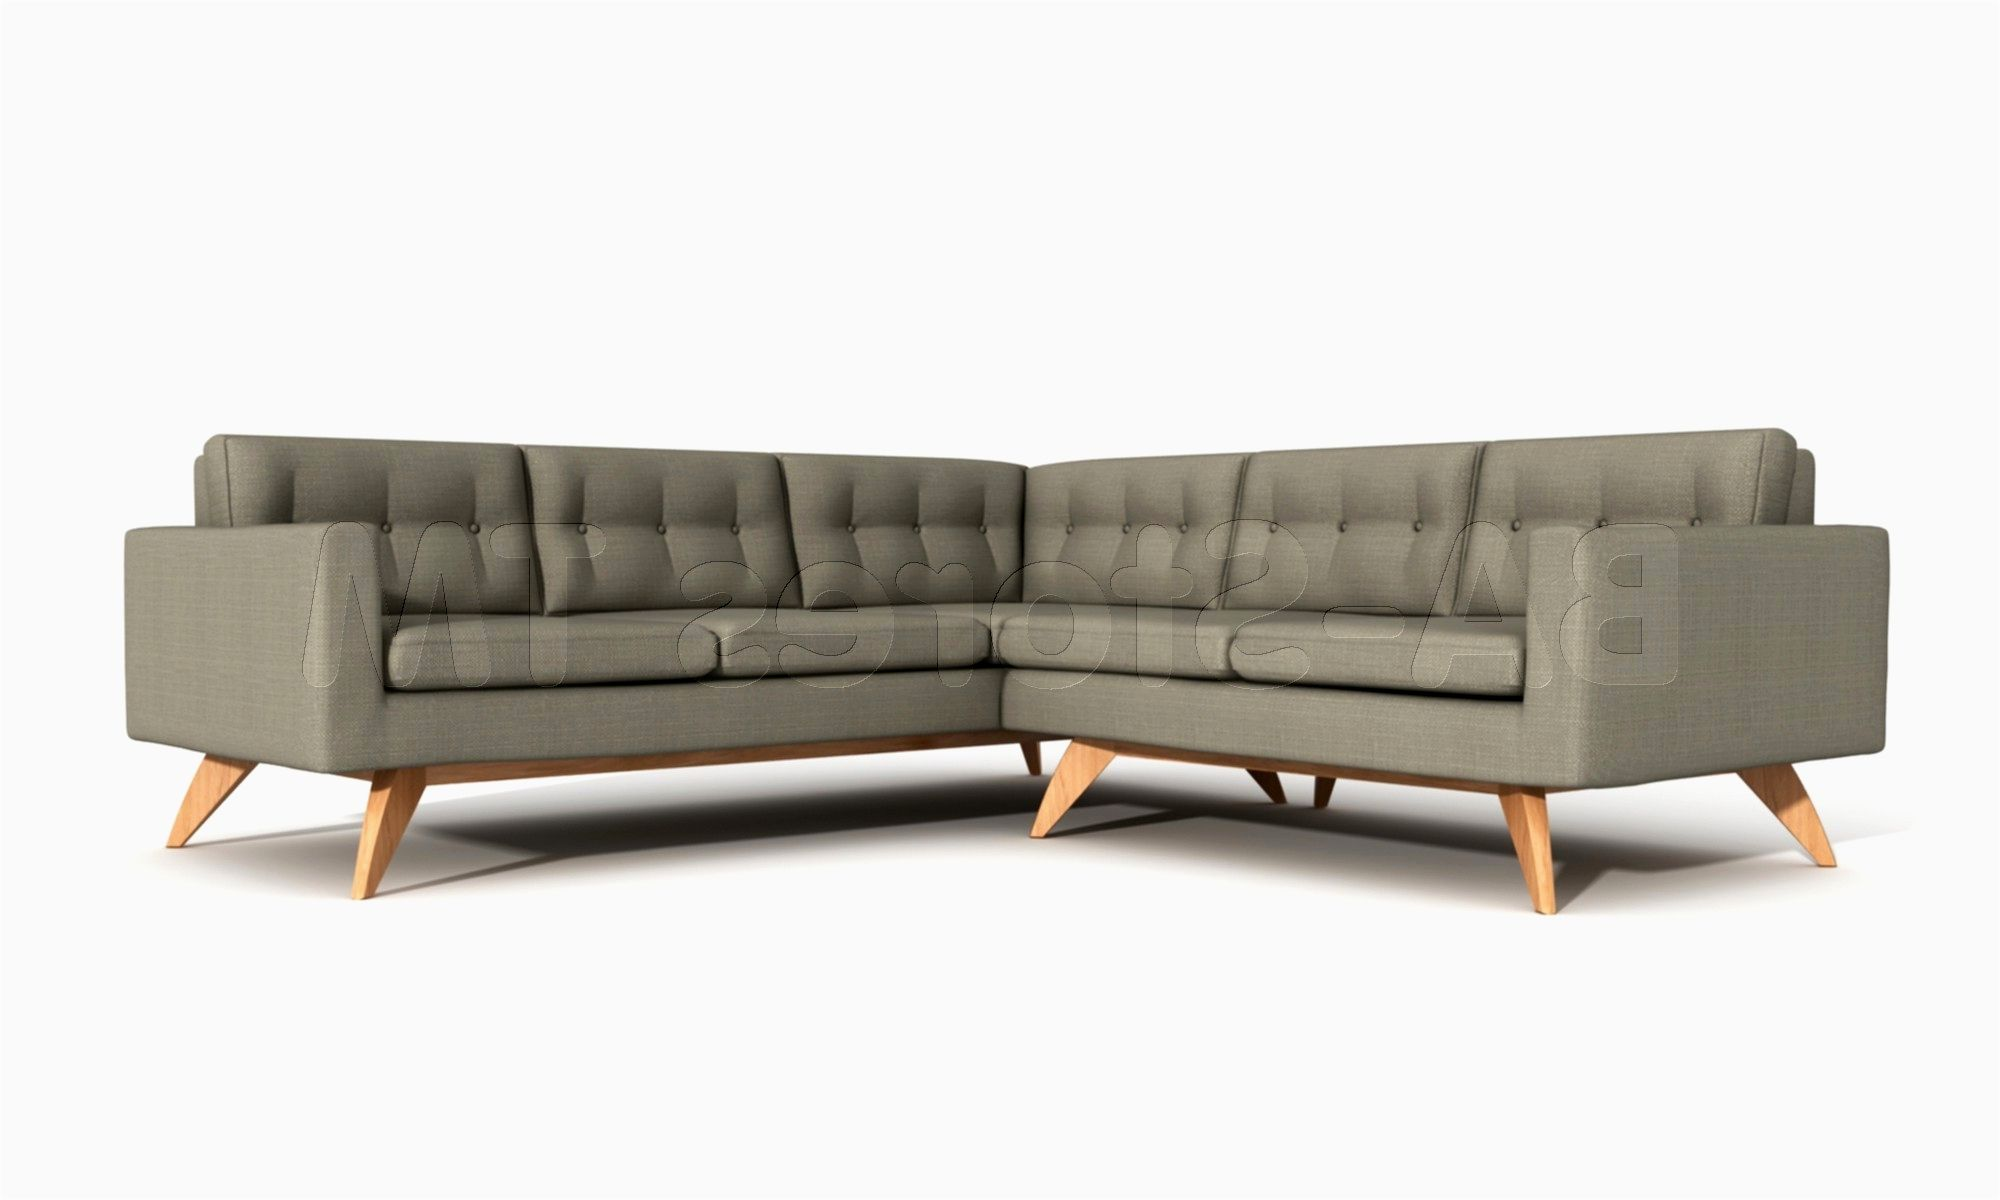 fresh sectional sofas cheap image-Latest Sectional sofas Cheap Inspiration